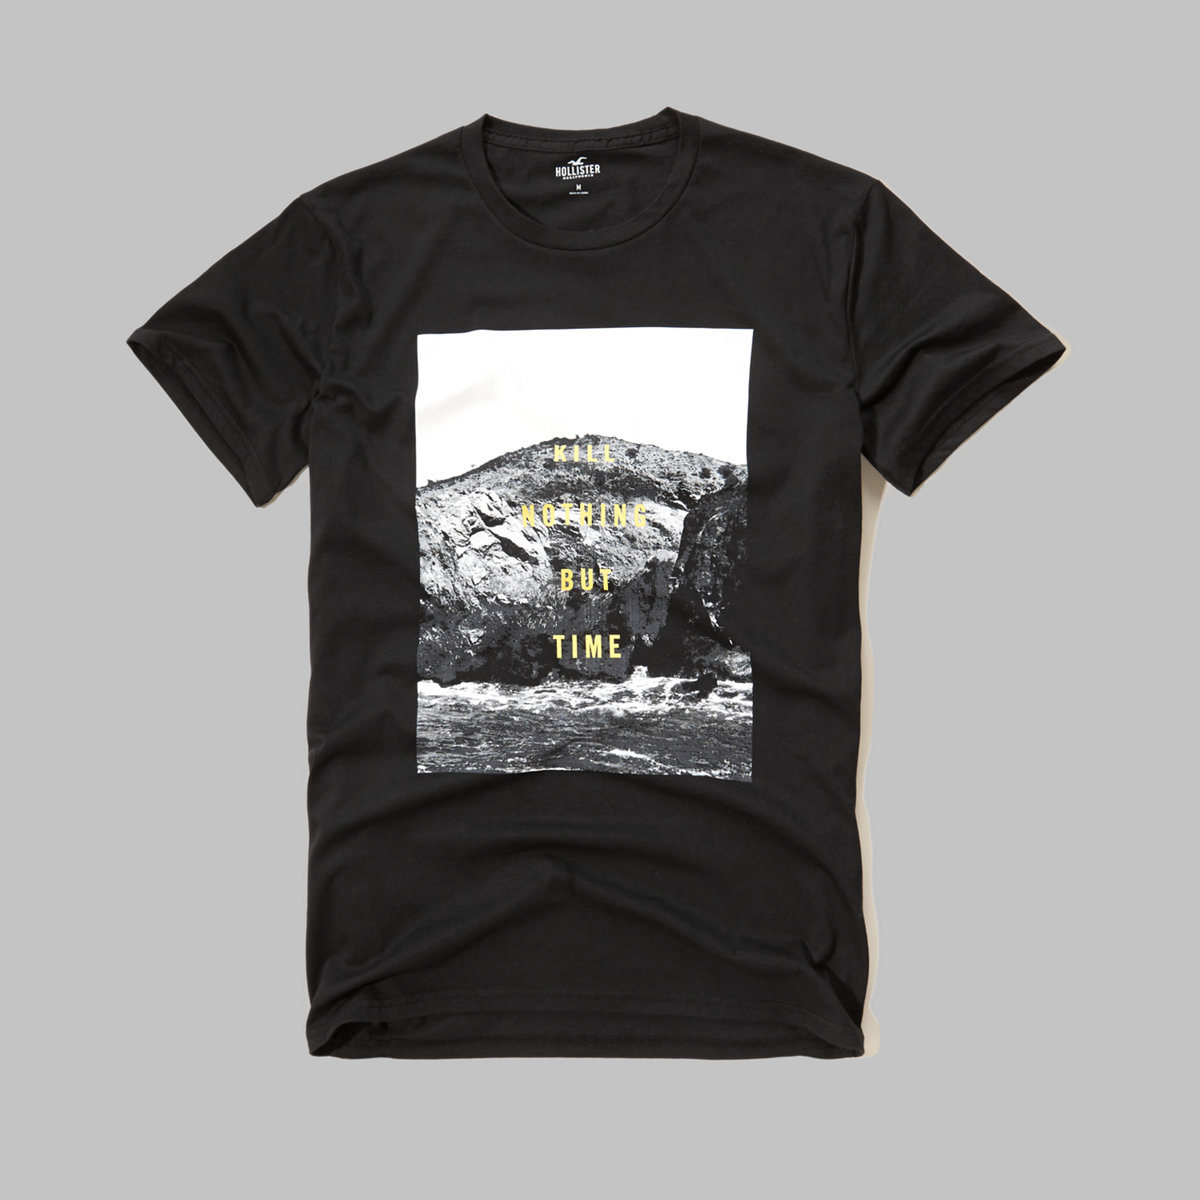 Printed Message Graphic Tee